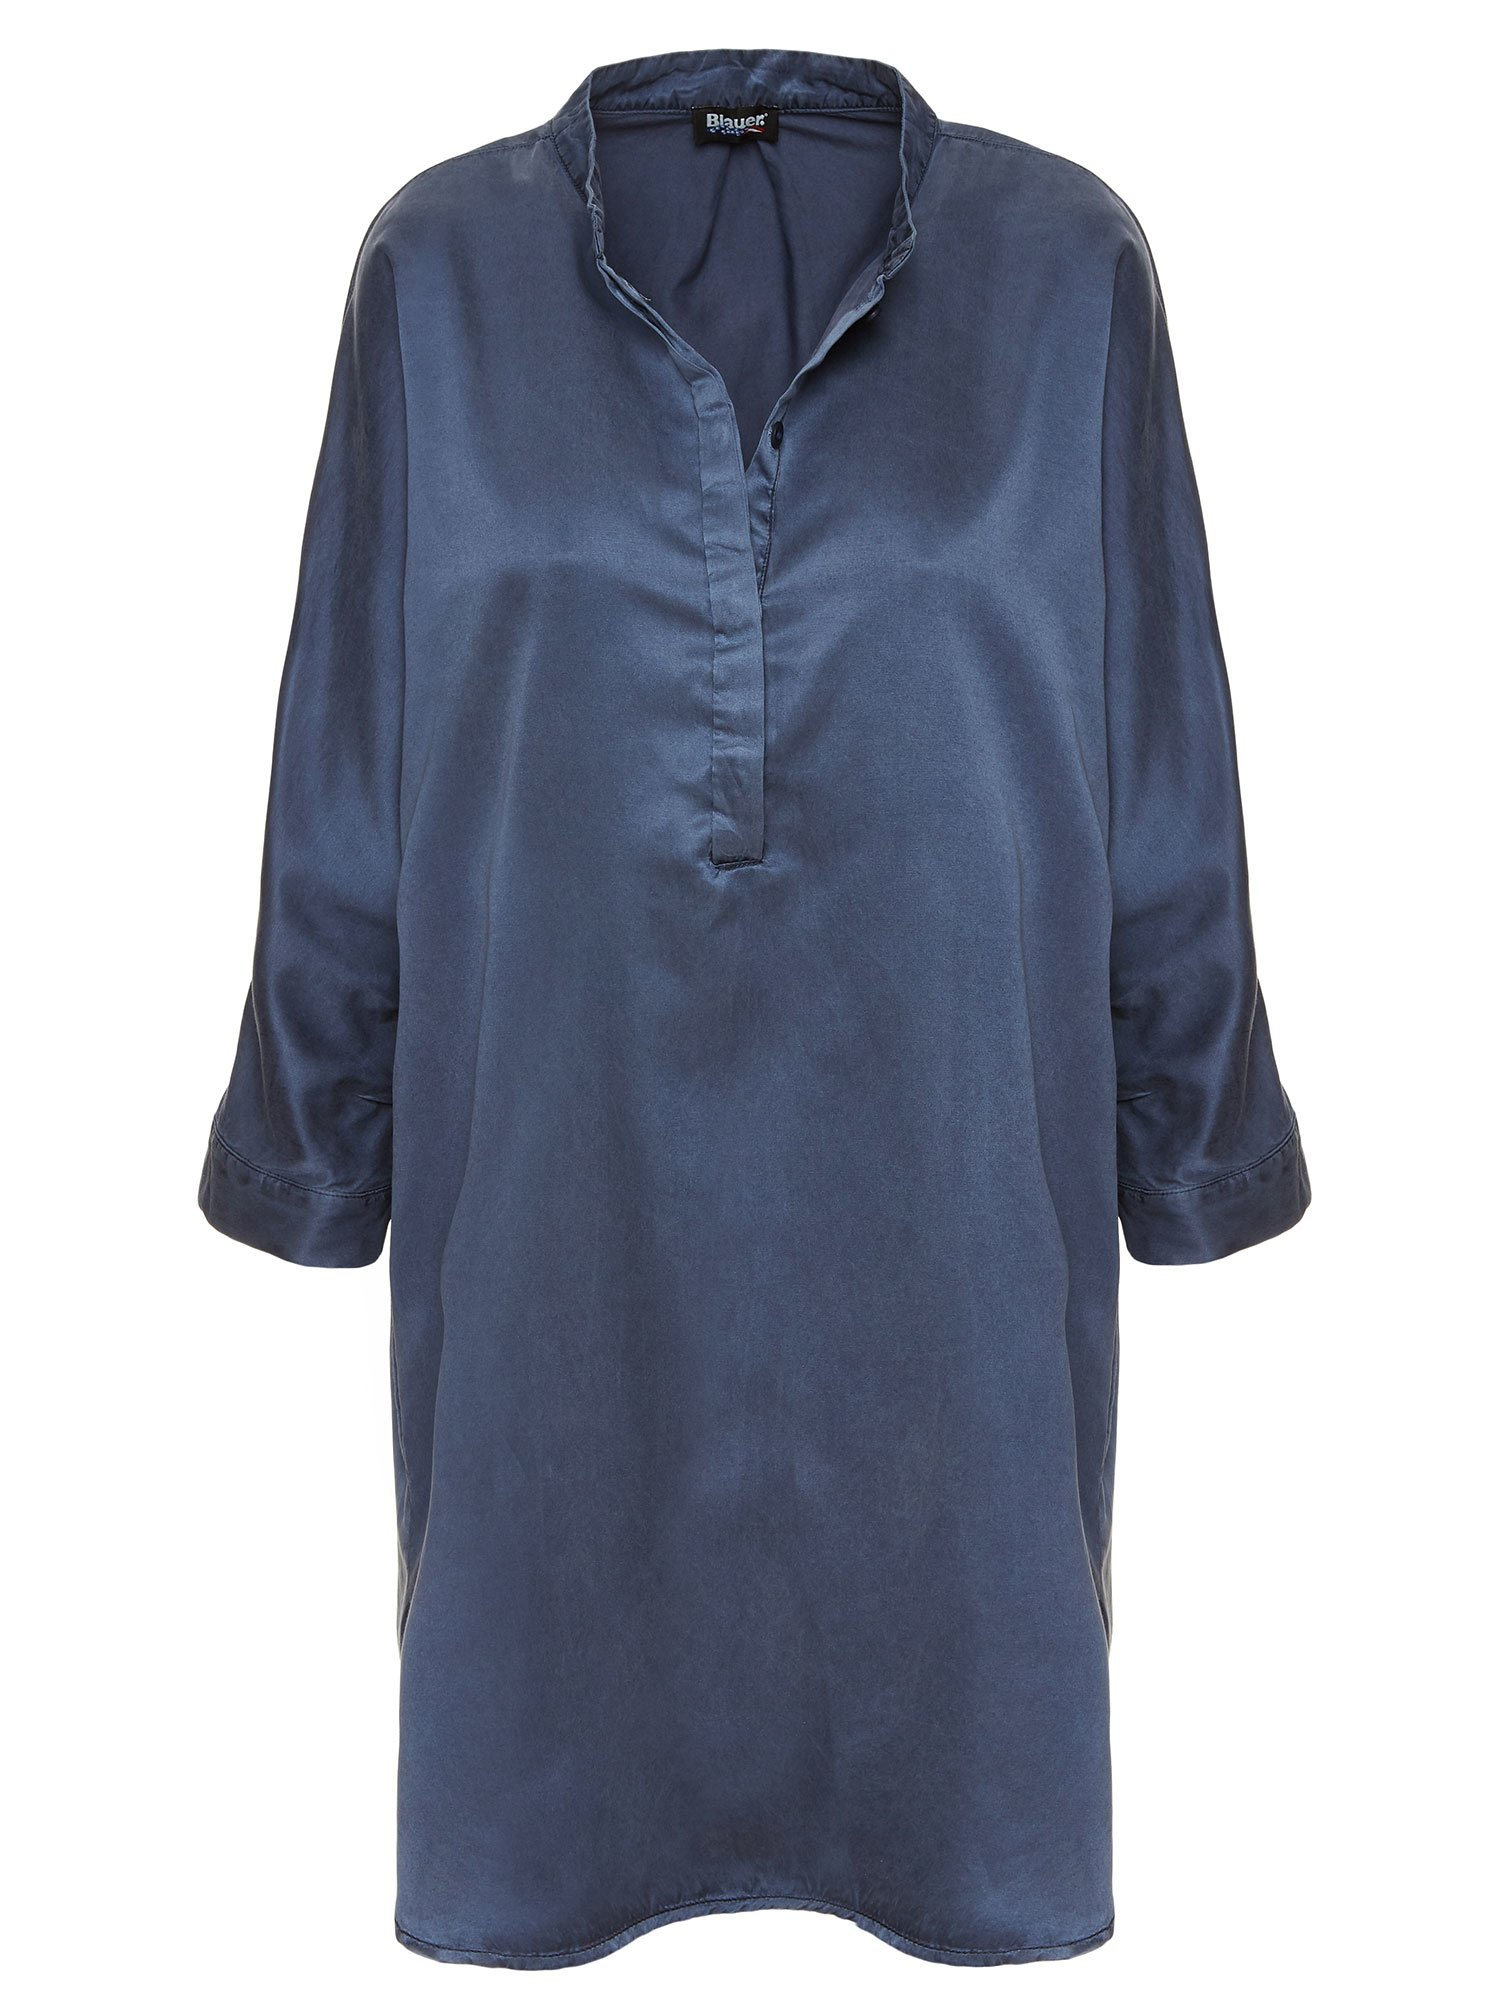 COTTON AND SILK DRESS - Blauer